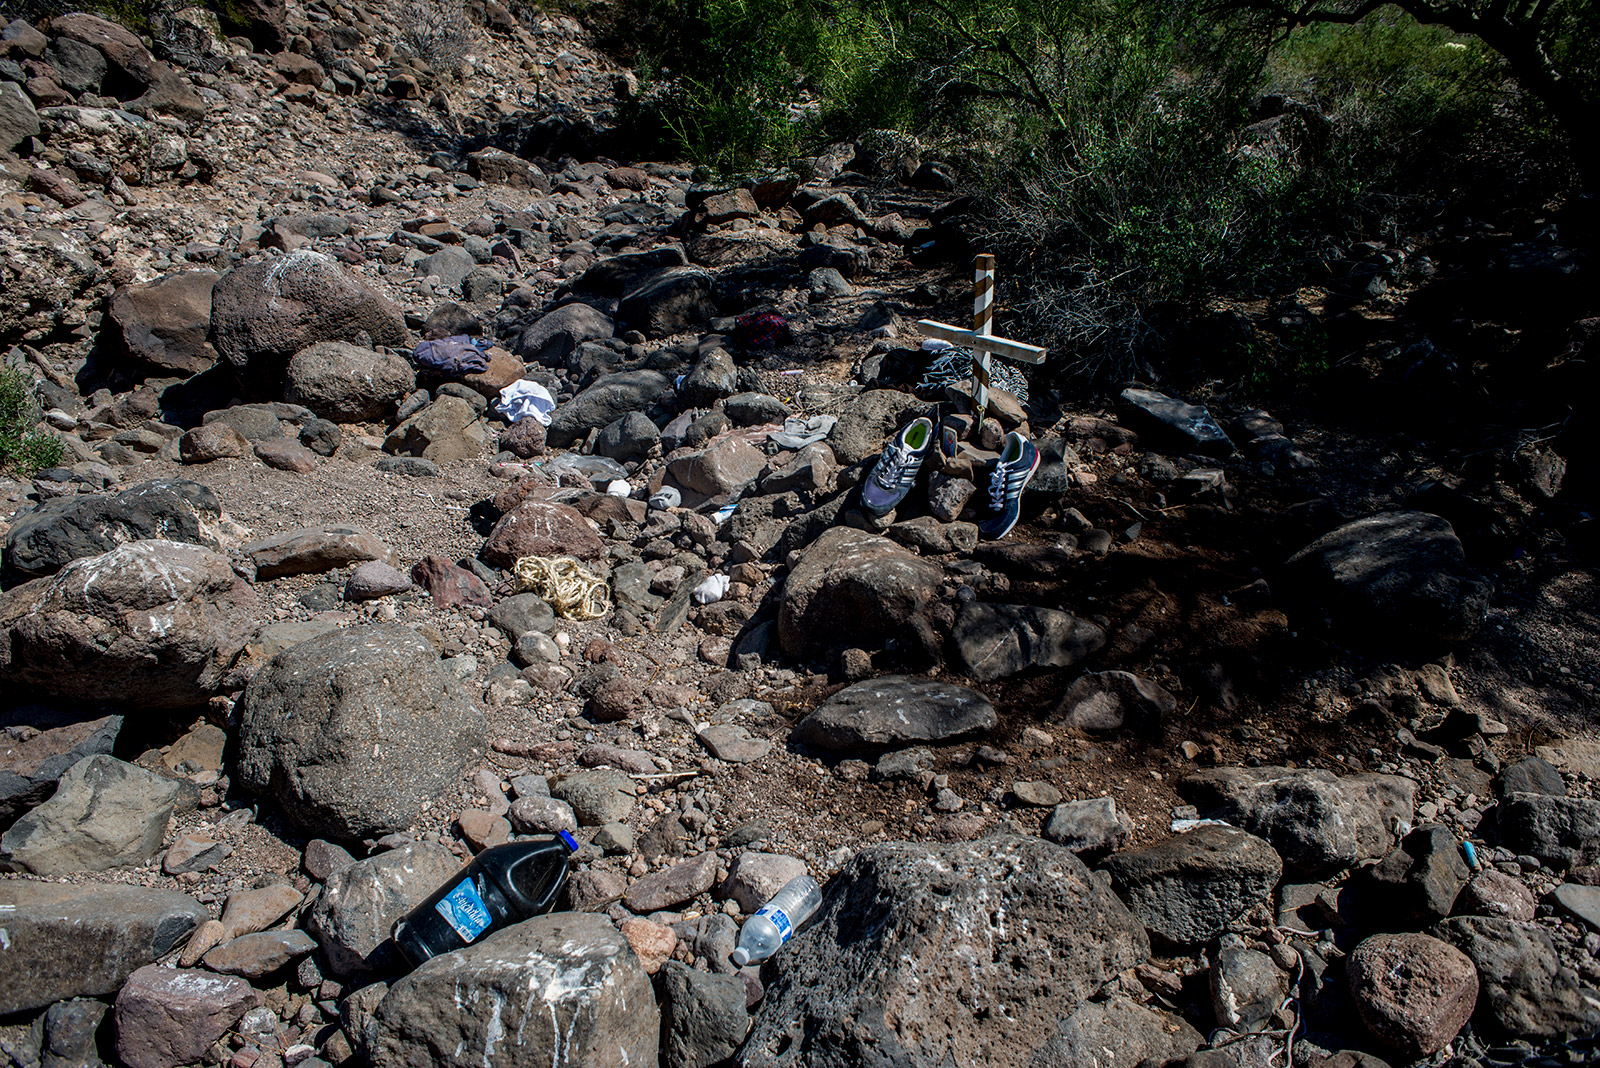 Volunteers with Aguilas Del Desierto erected a makeshift cross on Aug. 26, 2017, at the site where a body had decomposed in the Arizona desert near the U.S.-Mexico border. <em>(Brandon Quester/inewsource)</em>